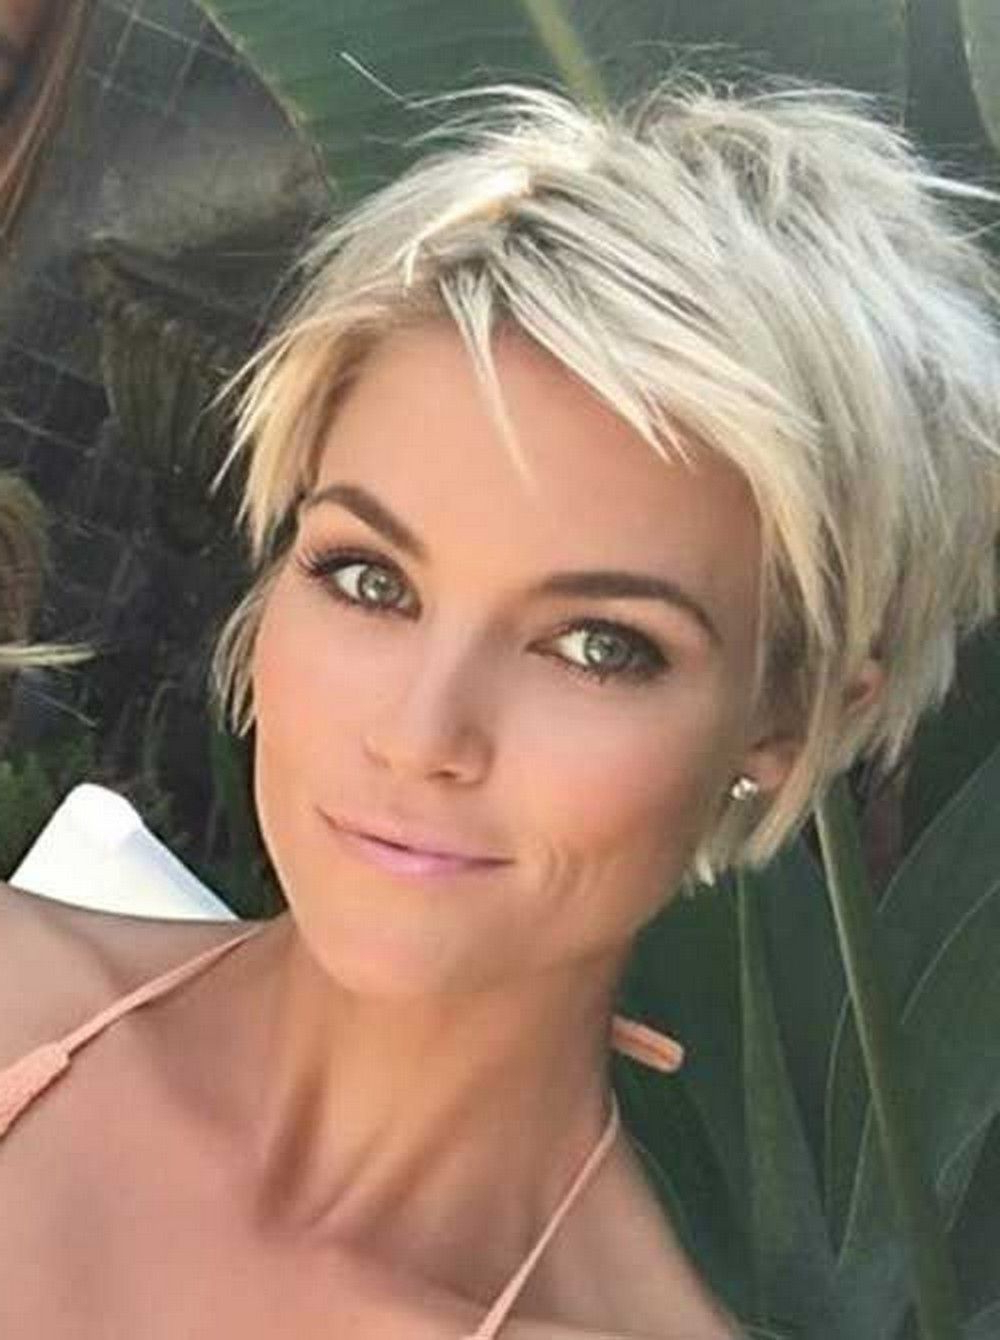 Pinjamie Arnette On New Hair In 2018 | Pinterest | Short Hair In Sexy Pastel Pixie Hairstyles (View 20 of 20)